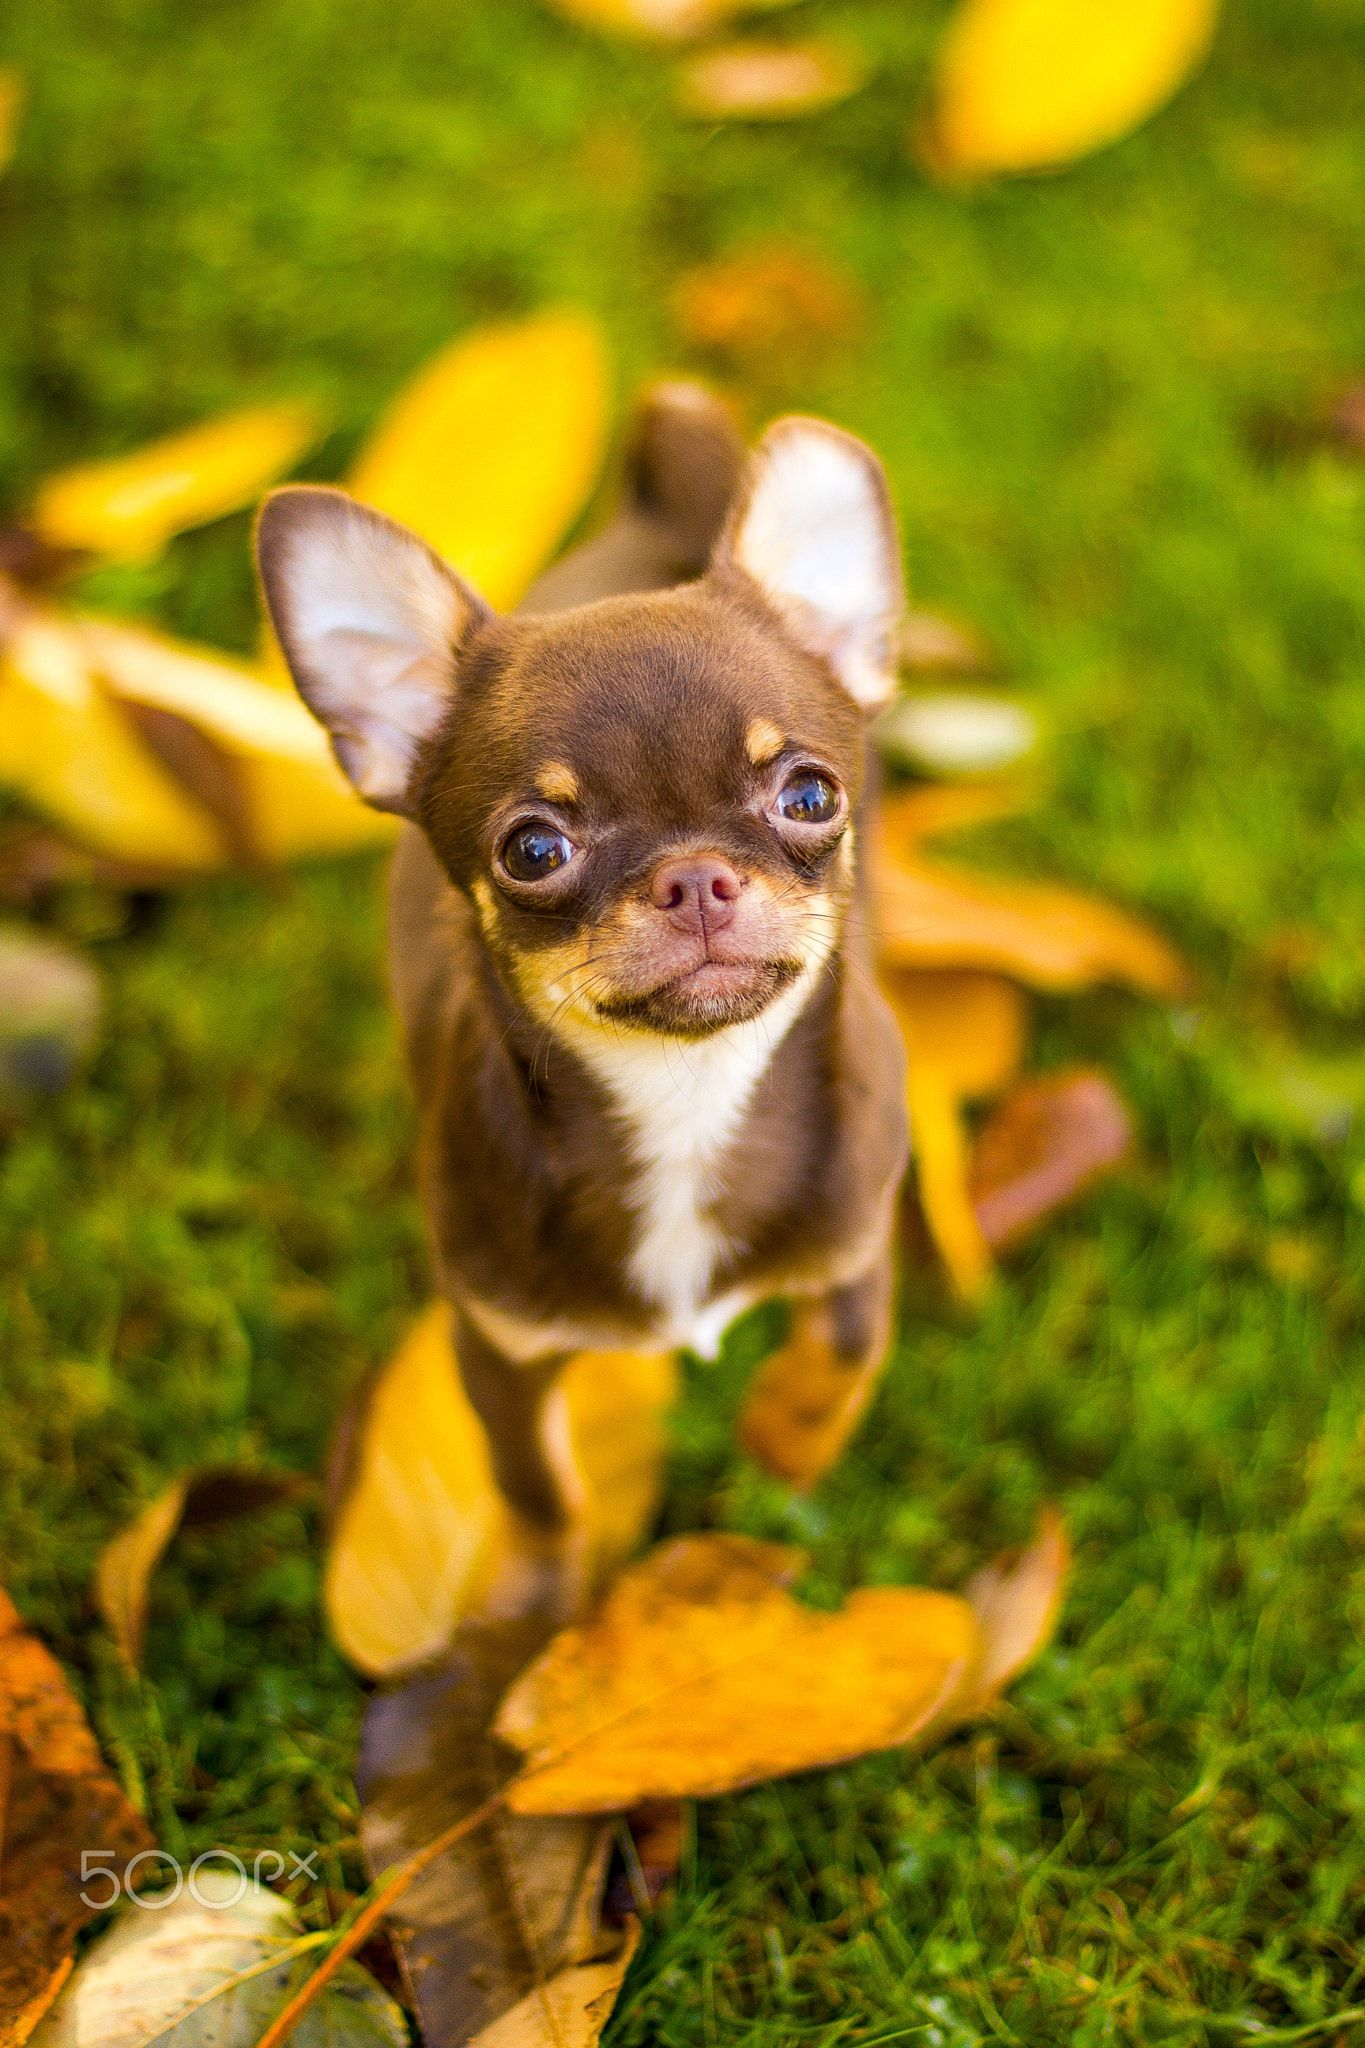 Pin By Meme Kowalzyk On Chihuahuas Cute Chihuahua Cute Dogs